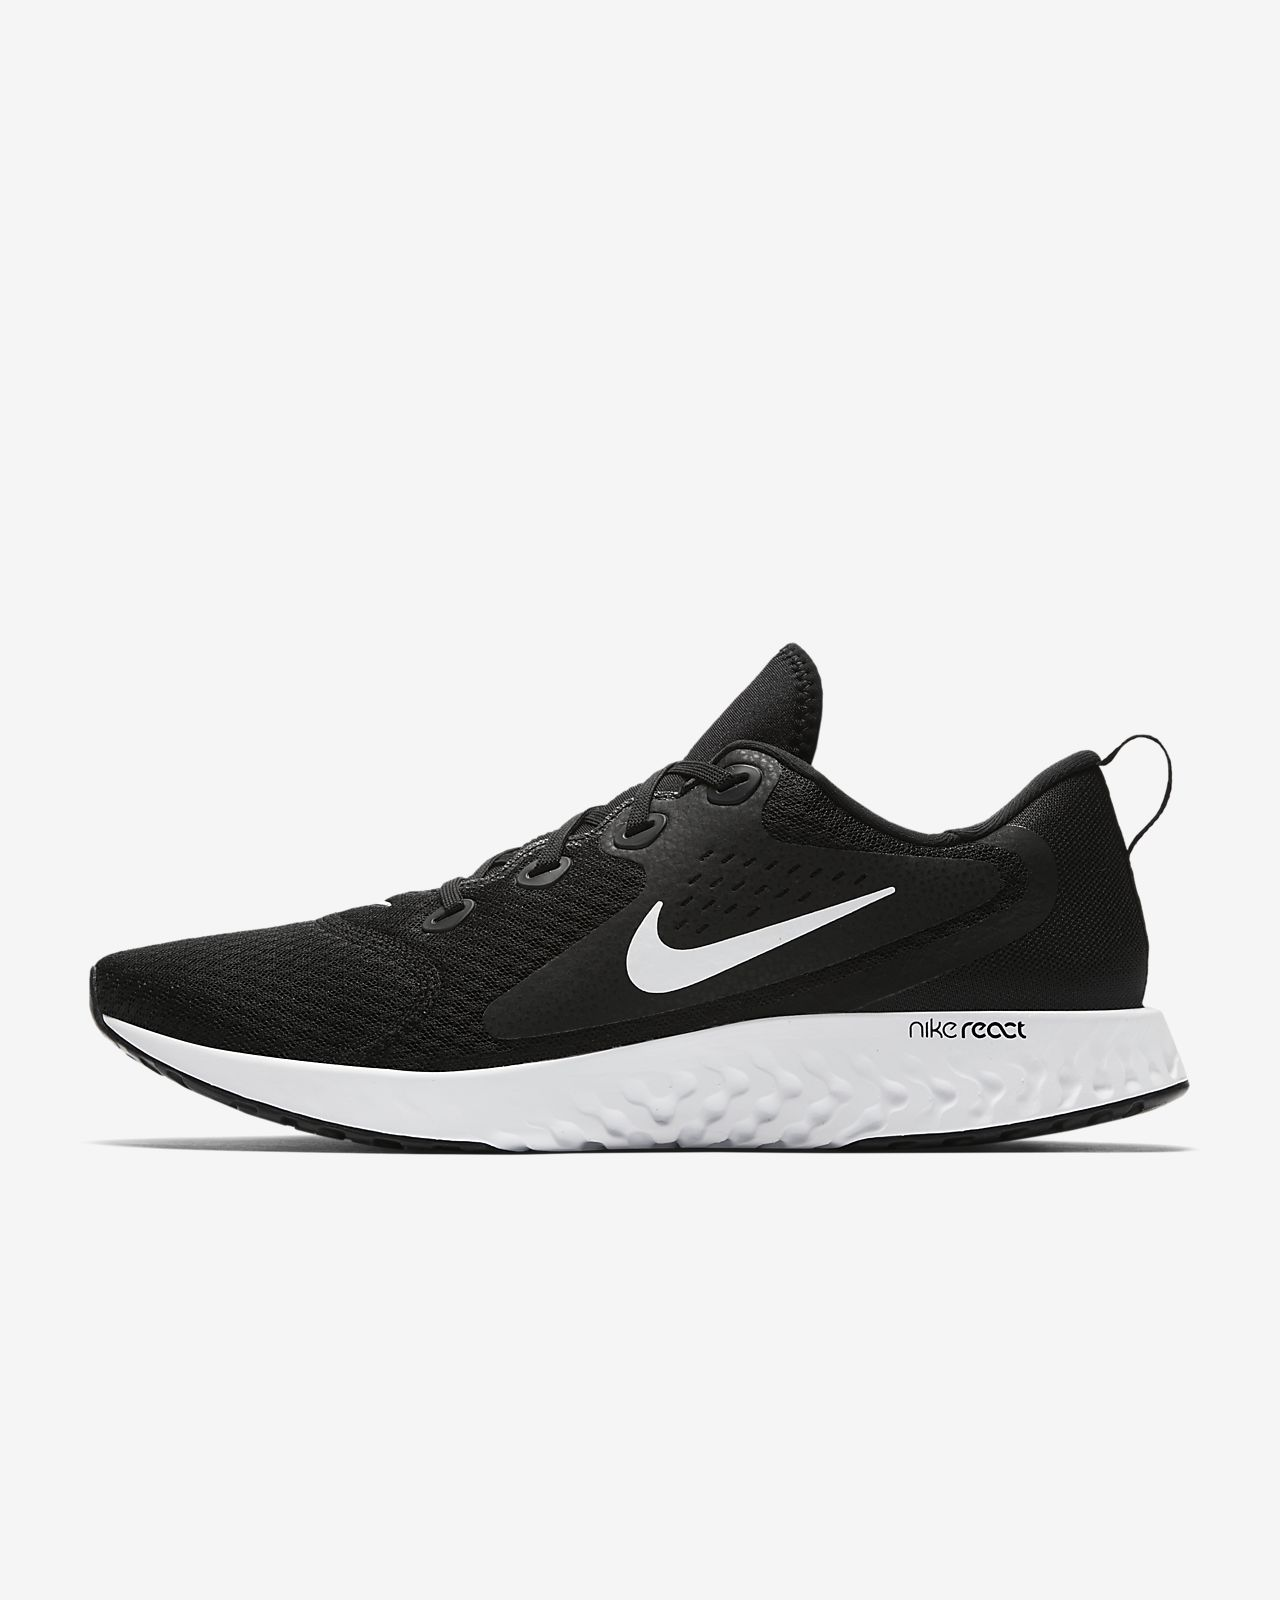 45312ffdc9202 Nike Legend React Men s Running Shoe. Nike.com AU